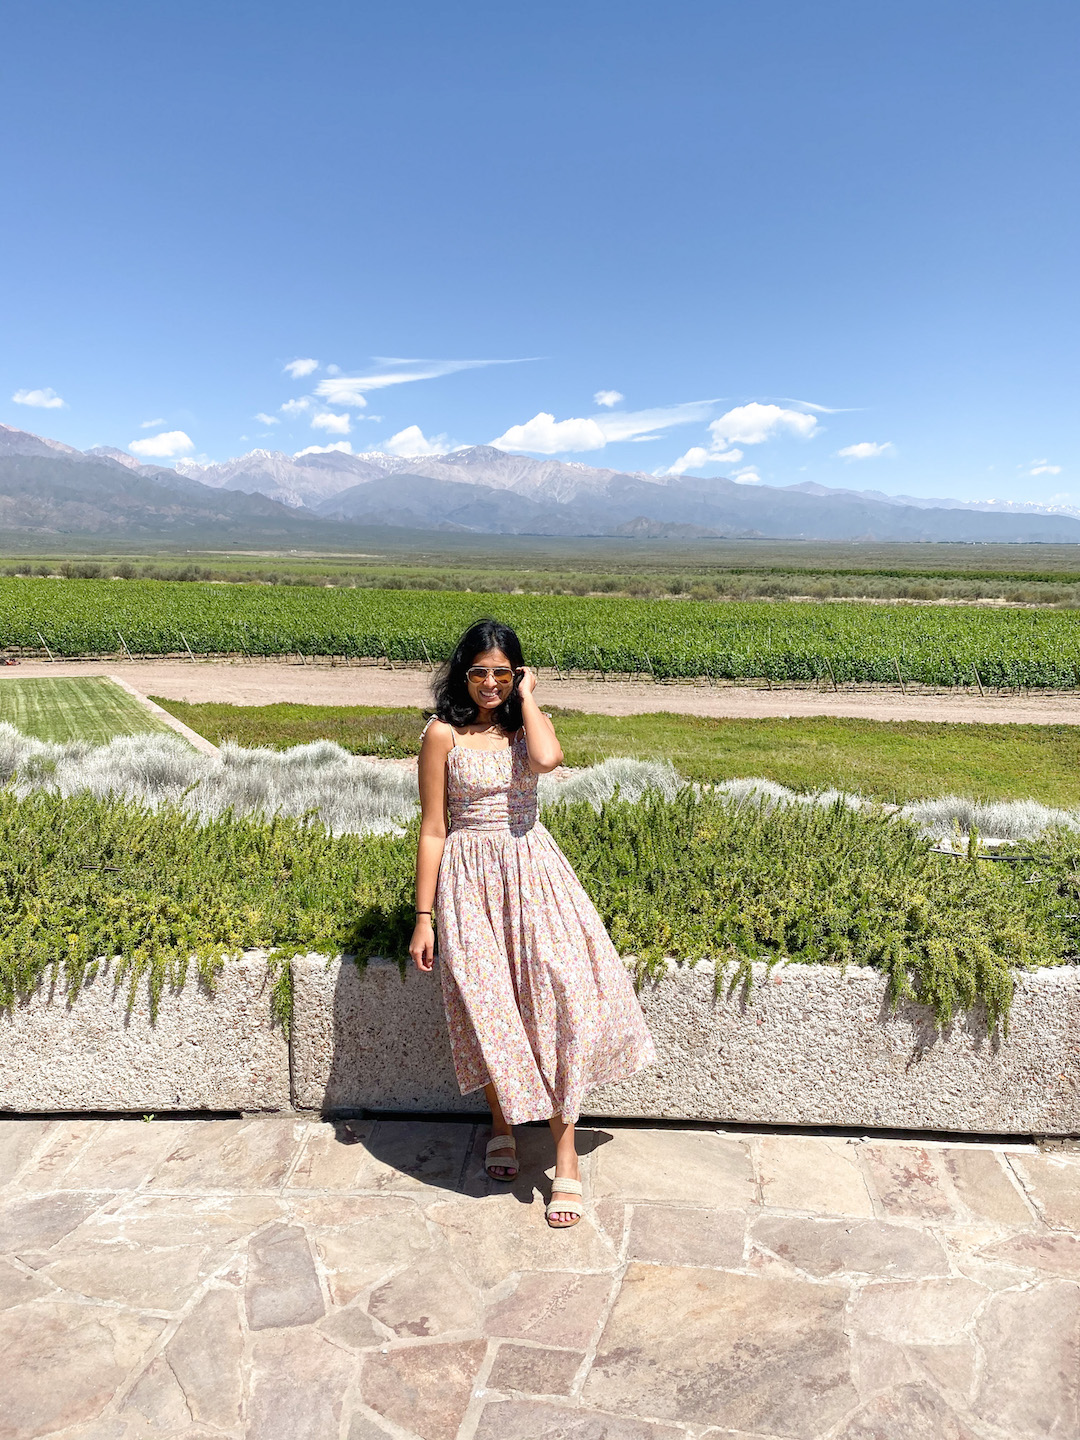 Her Travel Edit at Diam Andes Winery